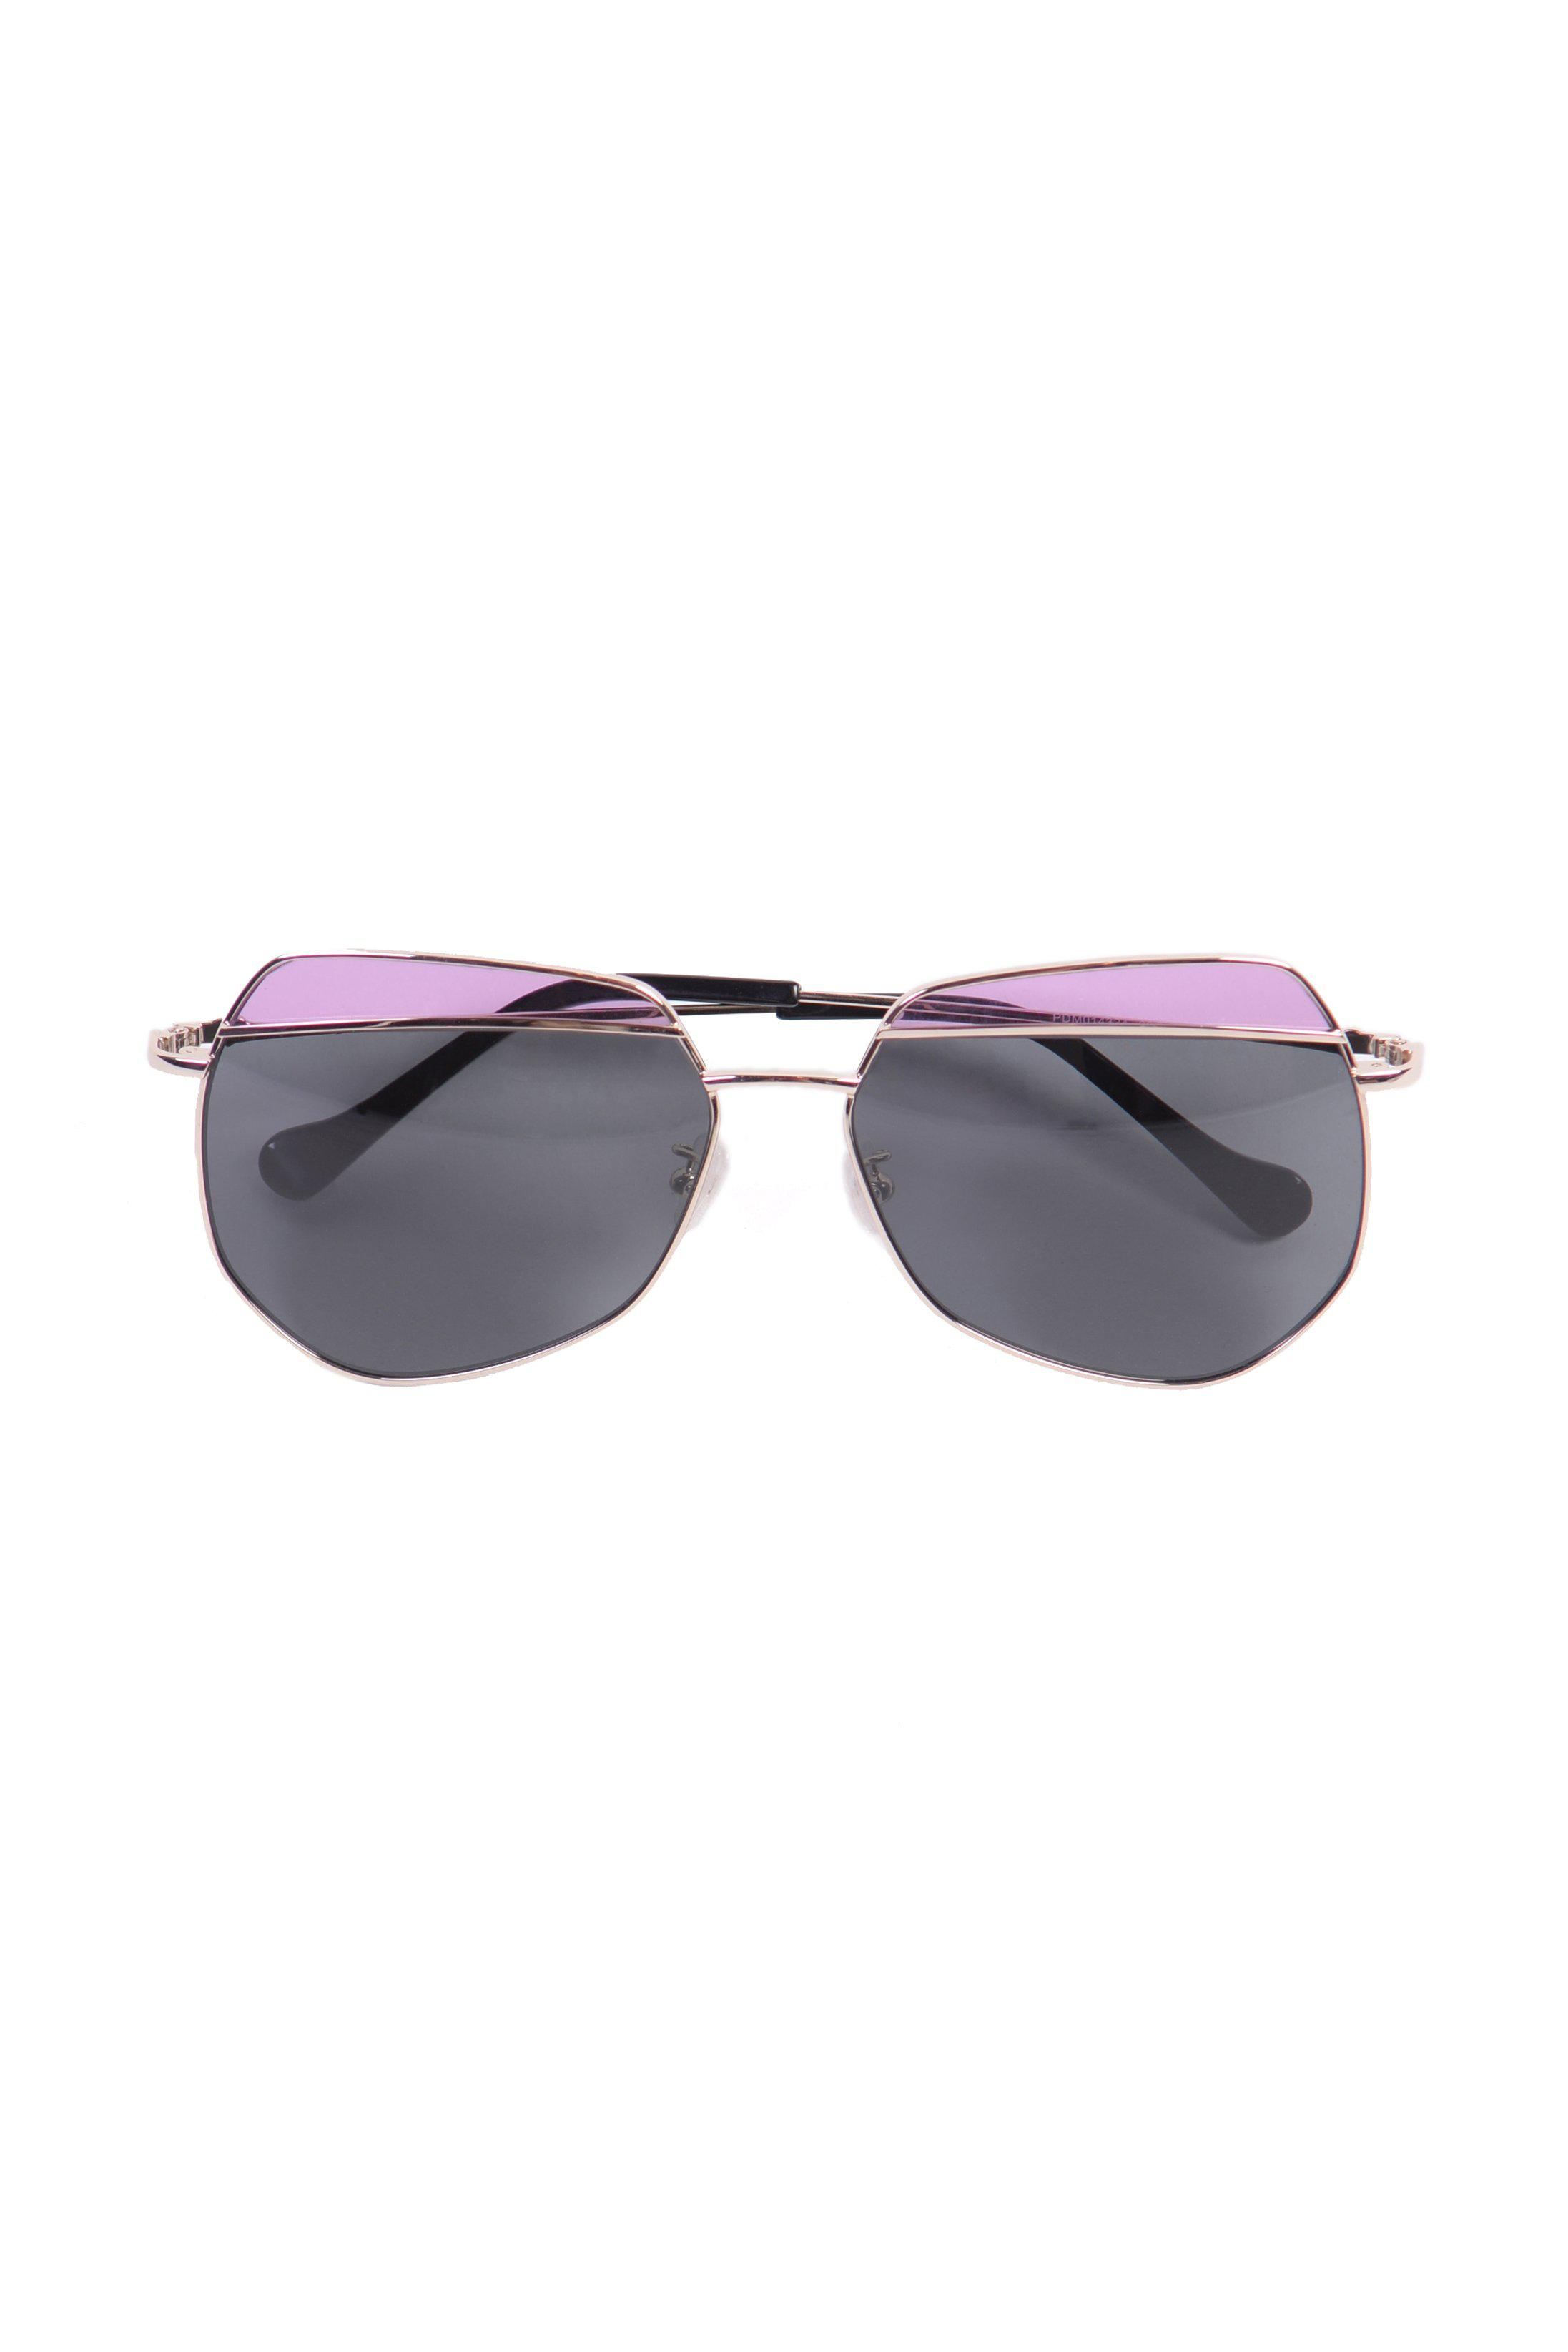 THE KATE - Black and Purple